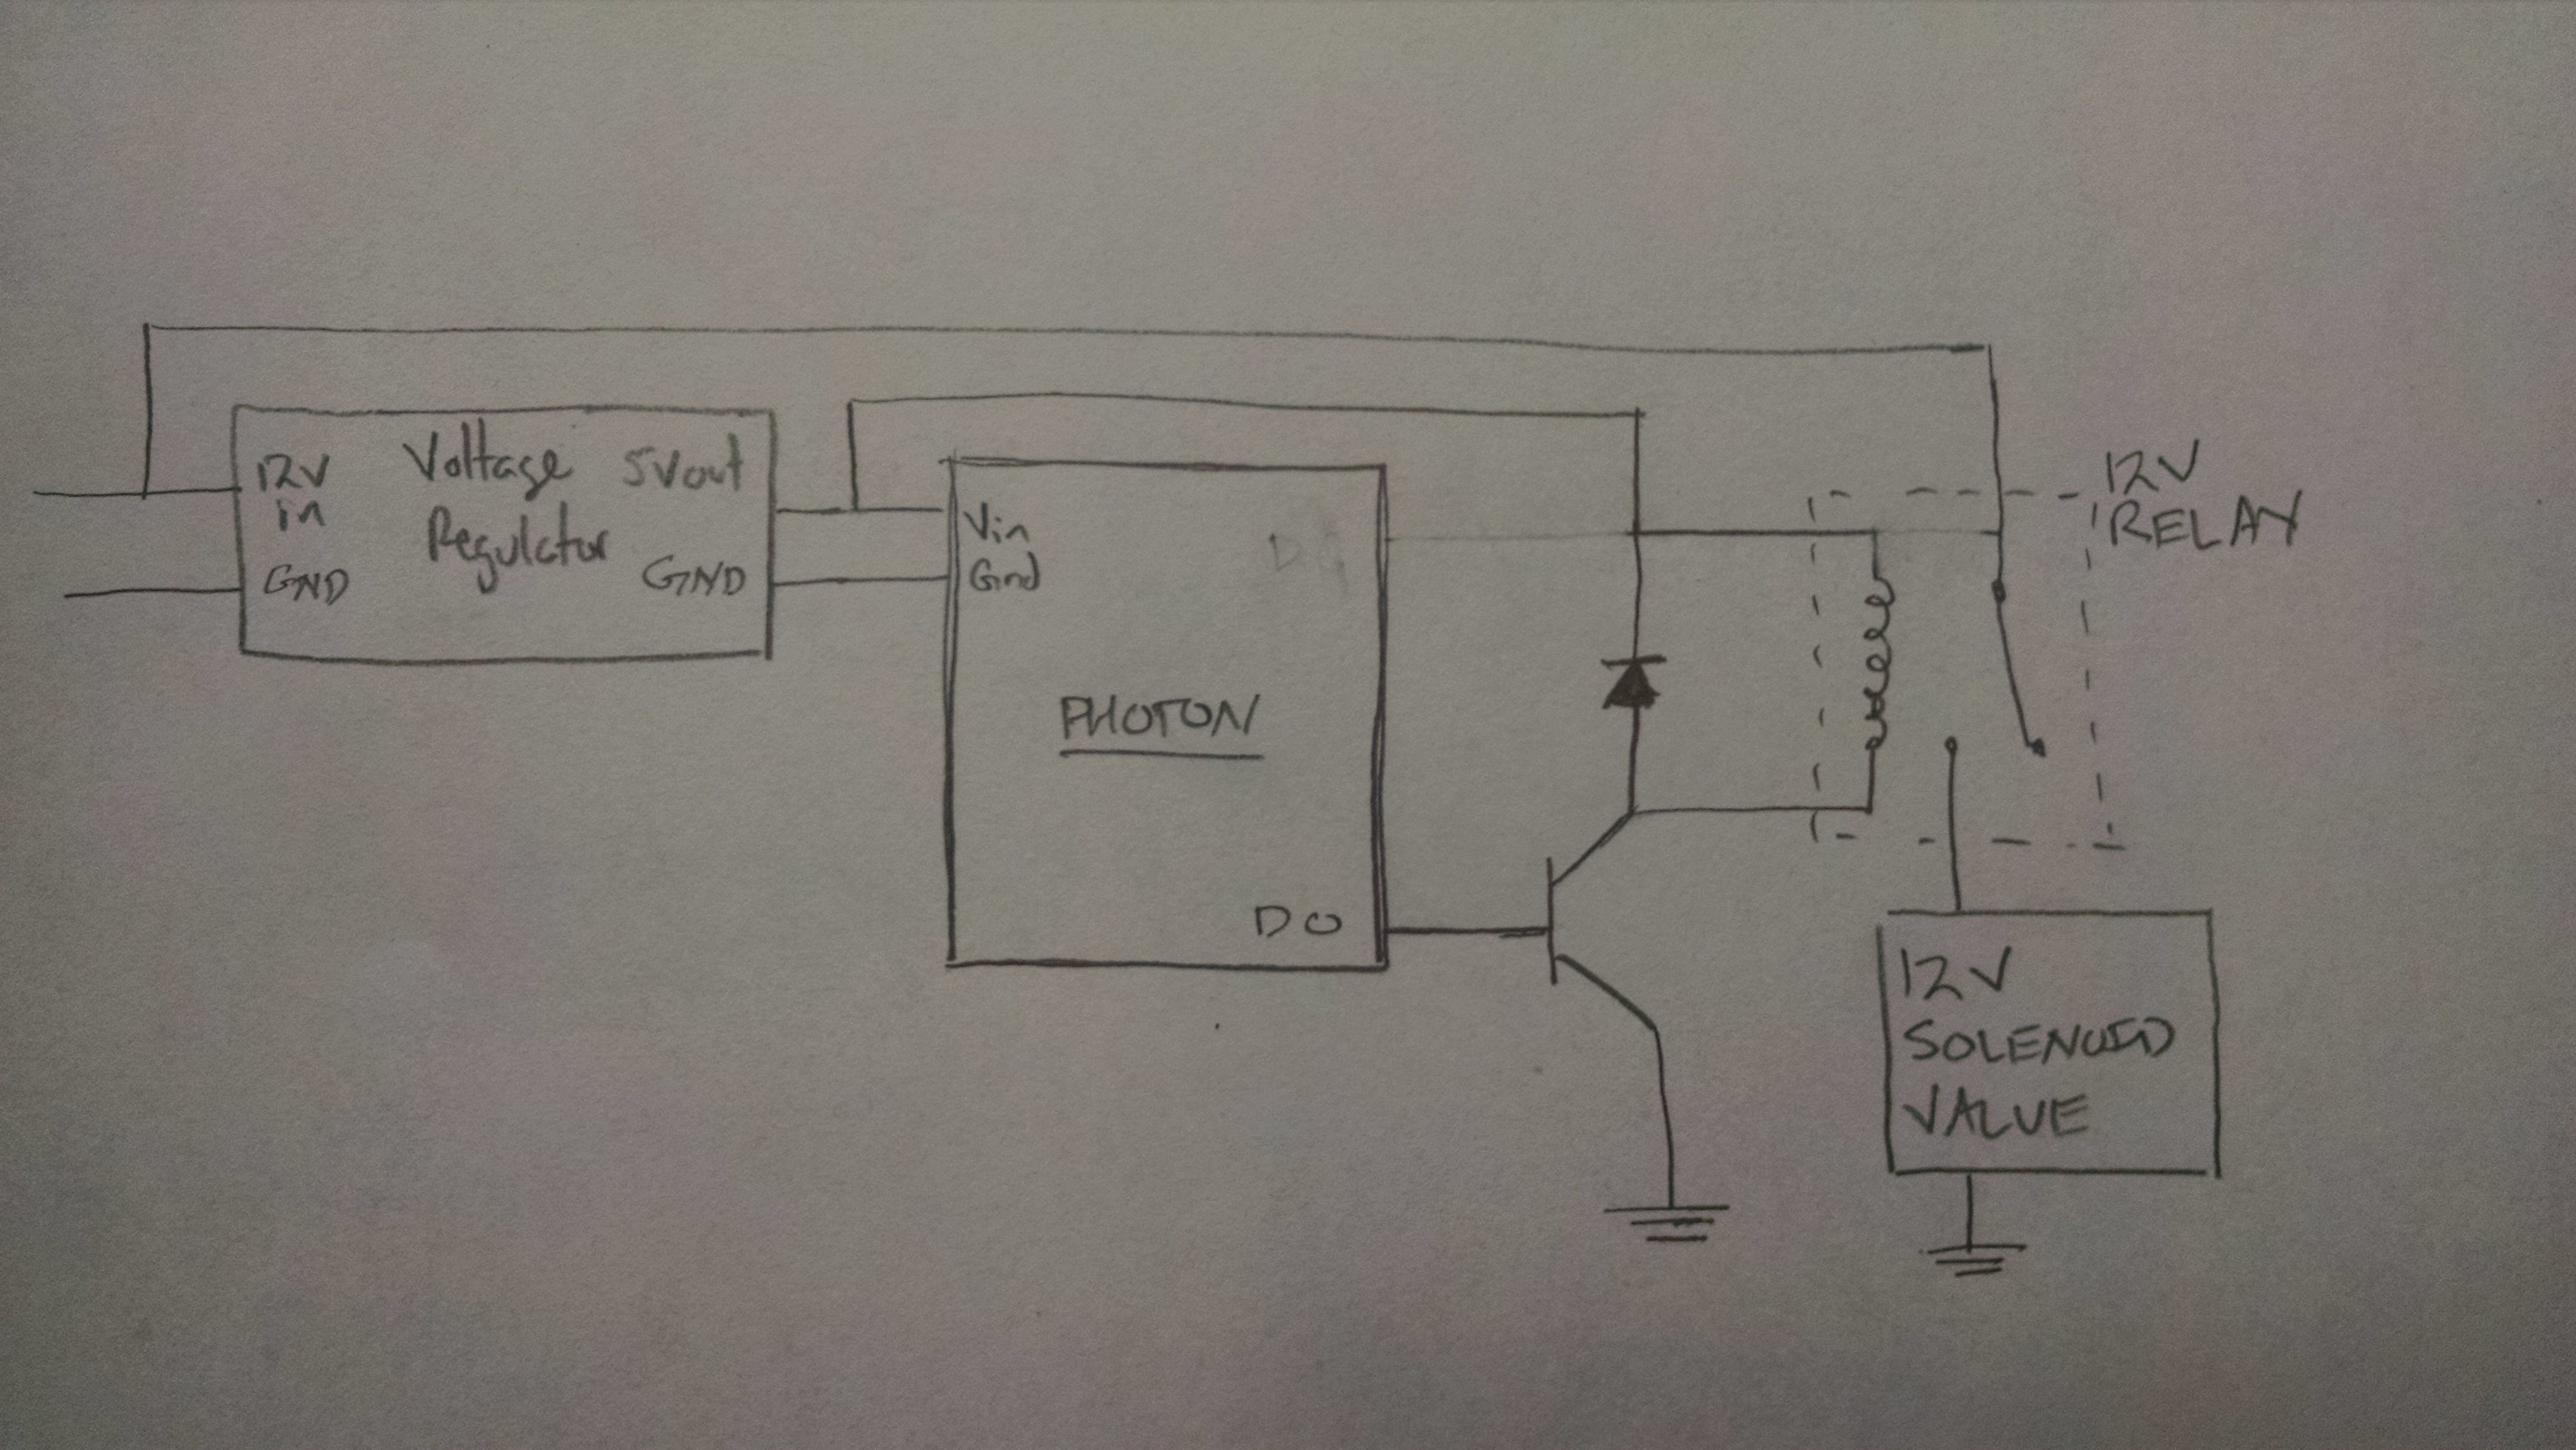 Electrical circuit used to control the solenoid.